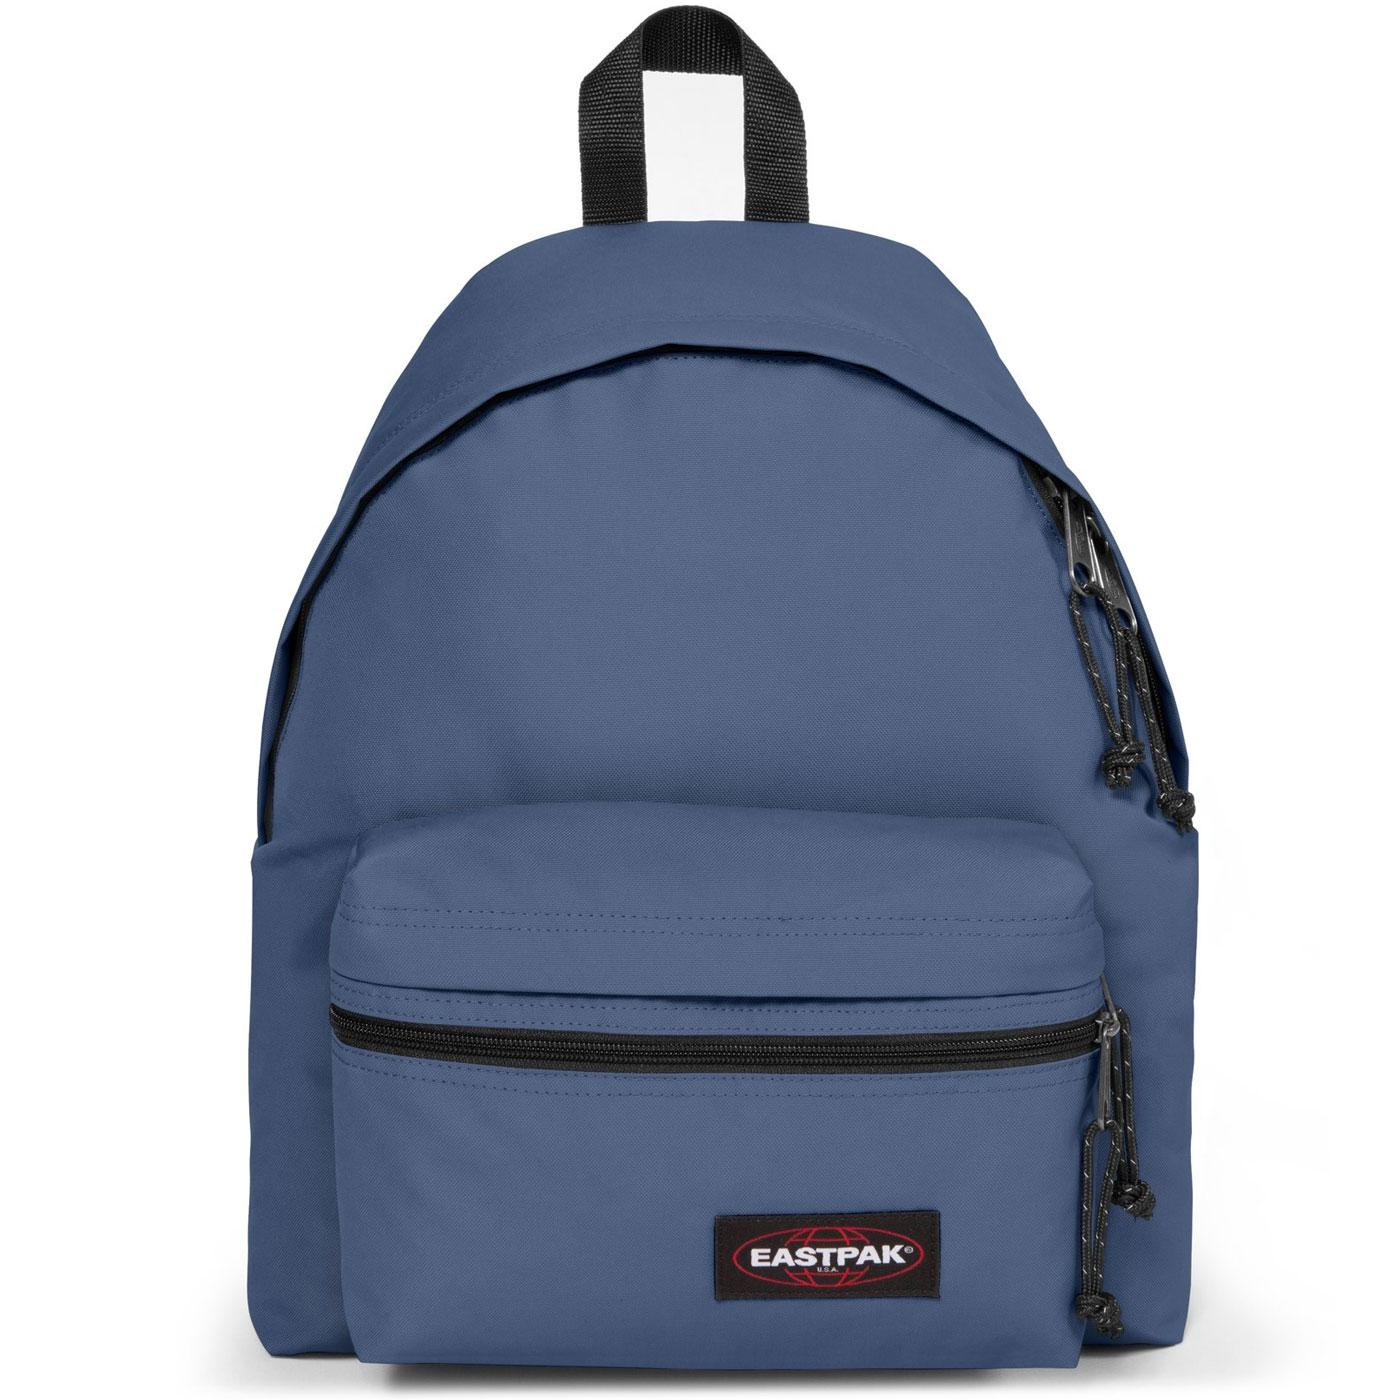 Padded Zippl'r EASTPAK Laptop Backpack (Bike Blue)